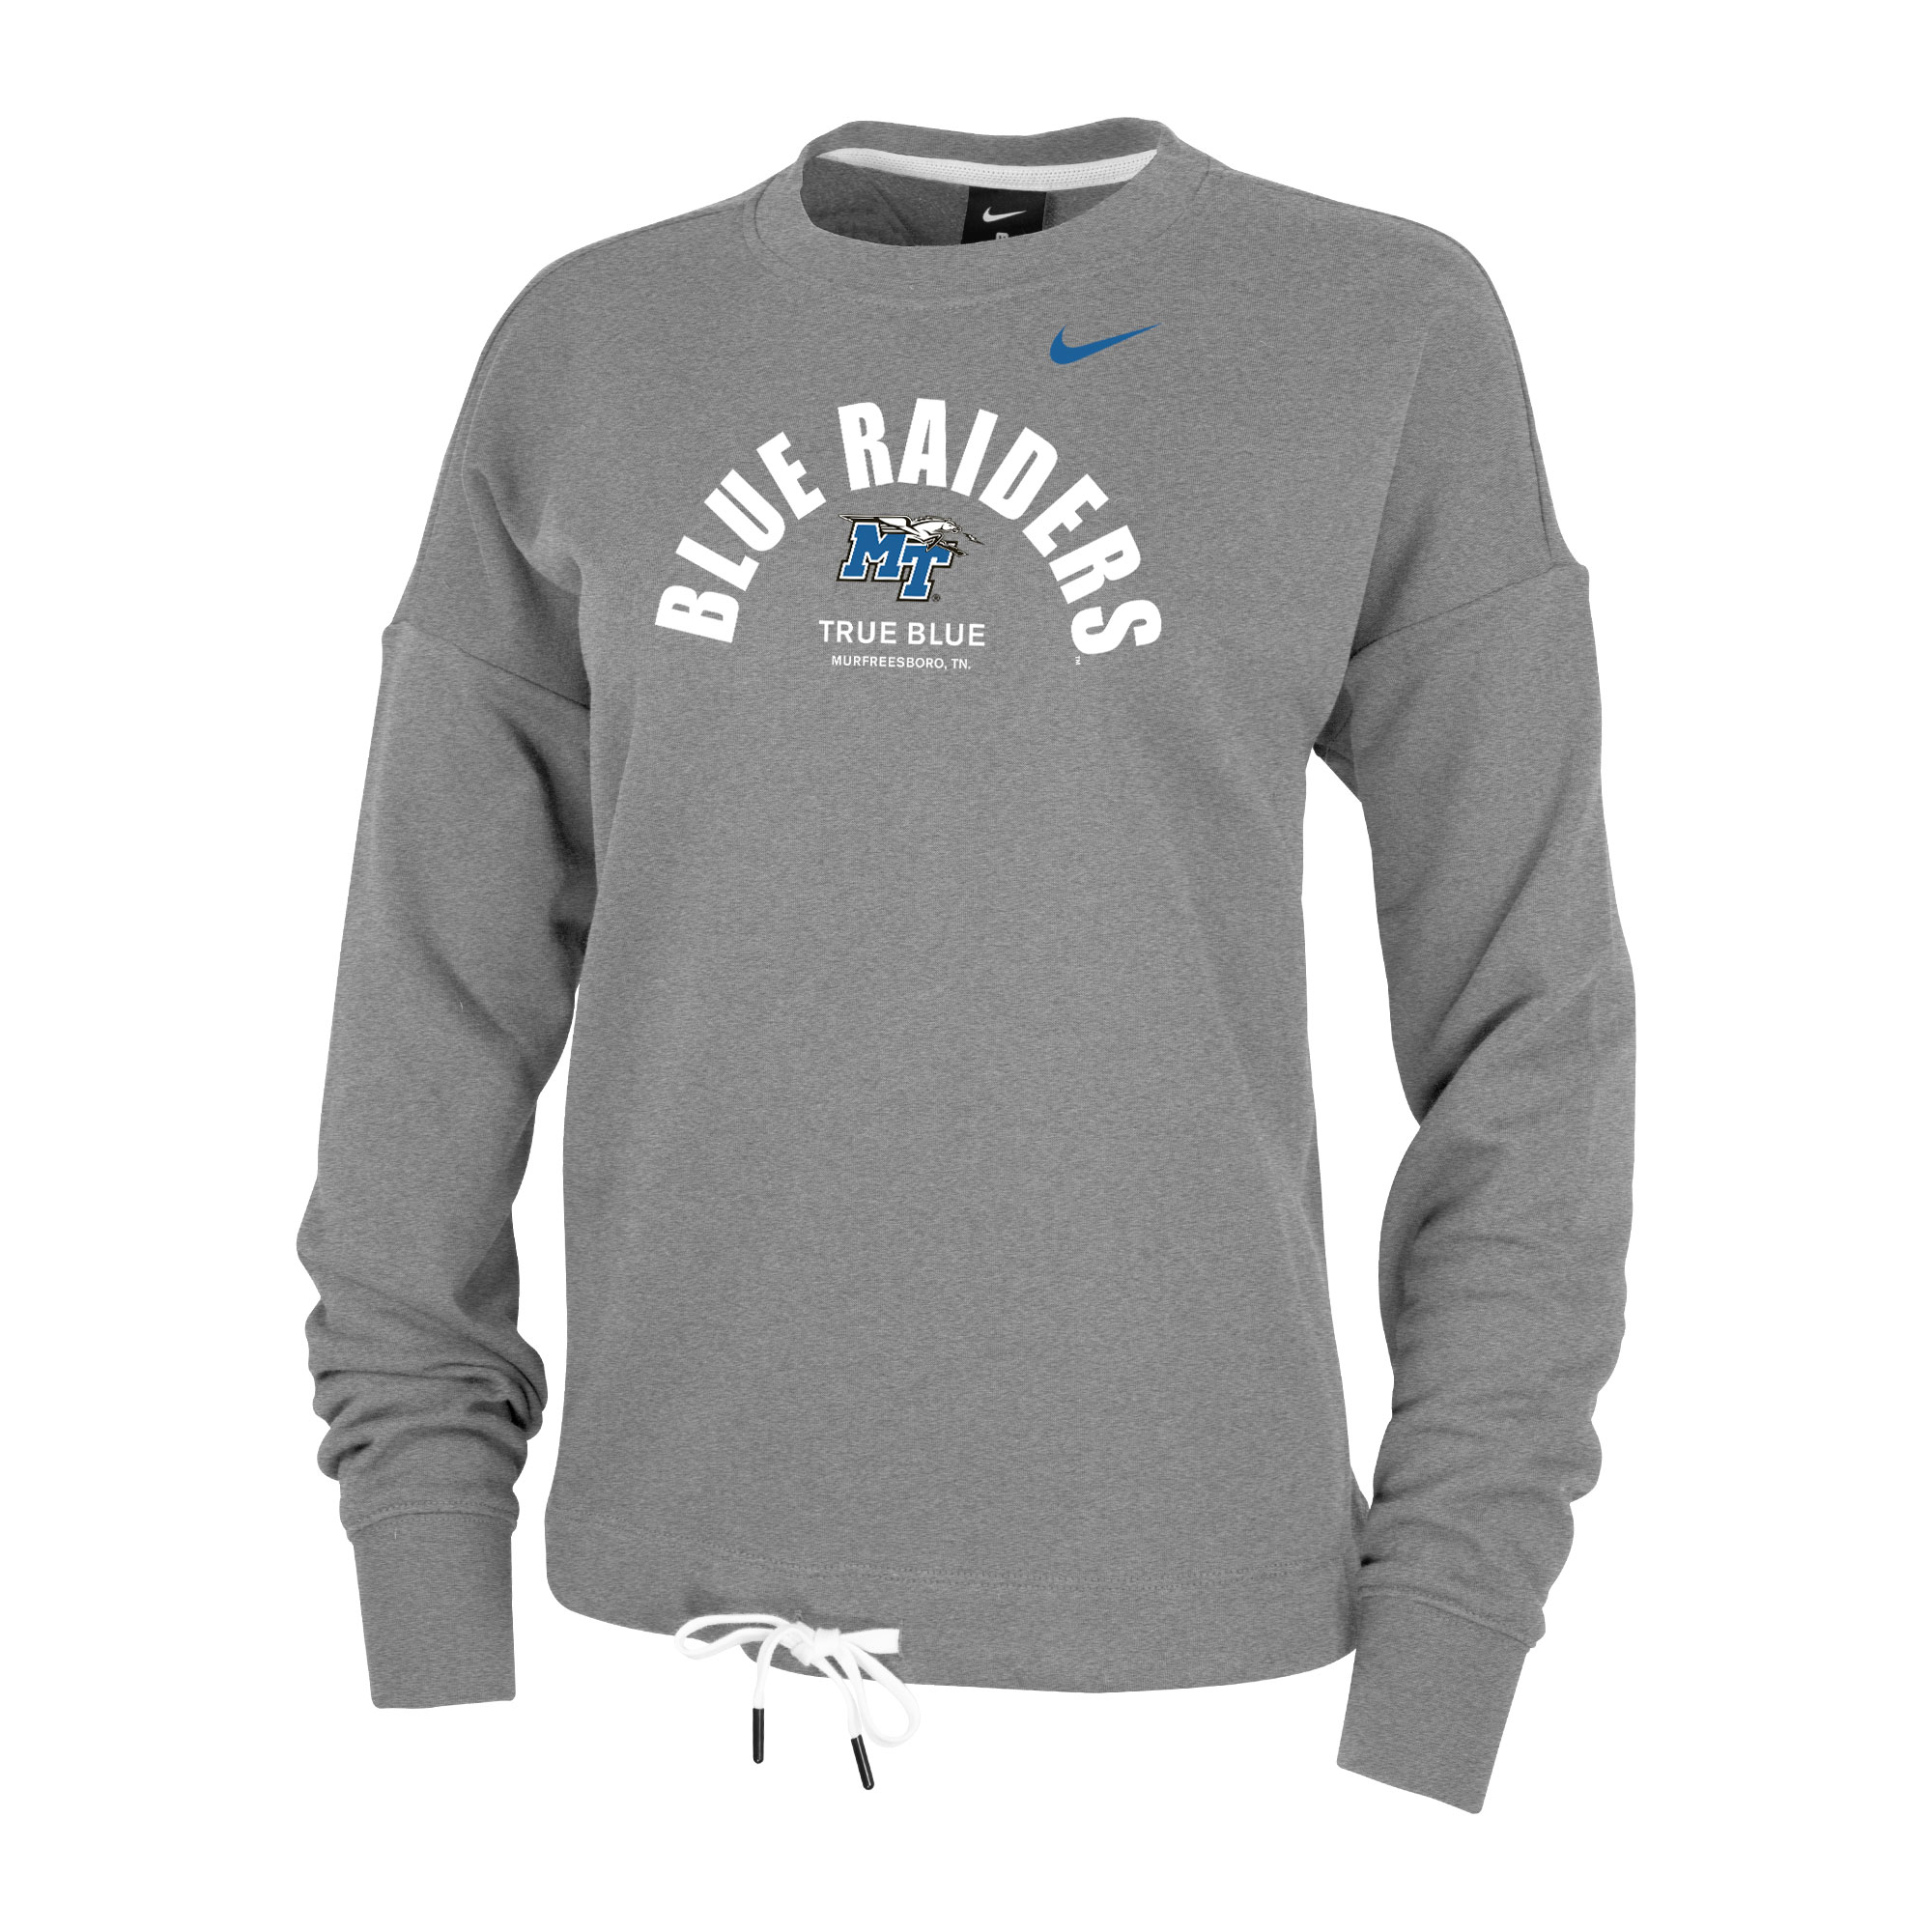 Blue Raiders True Blue Women's Fleece Nike® Crew Sweatshirt